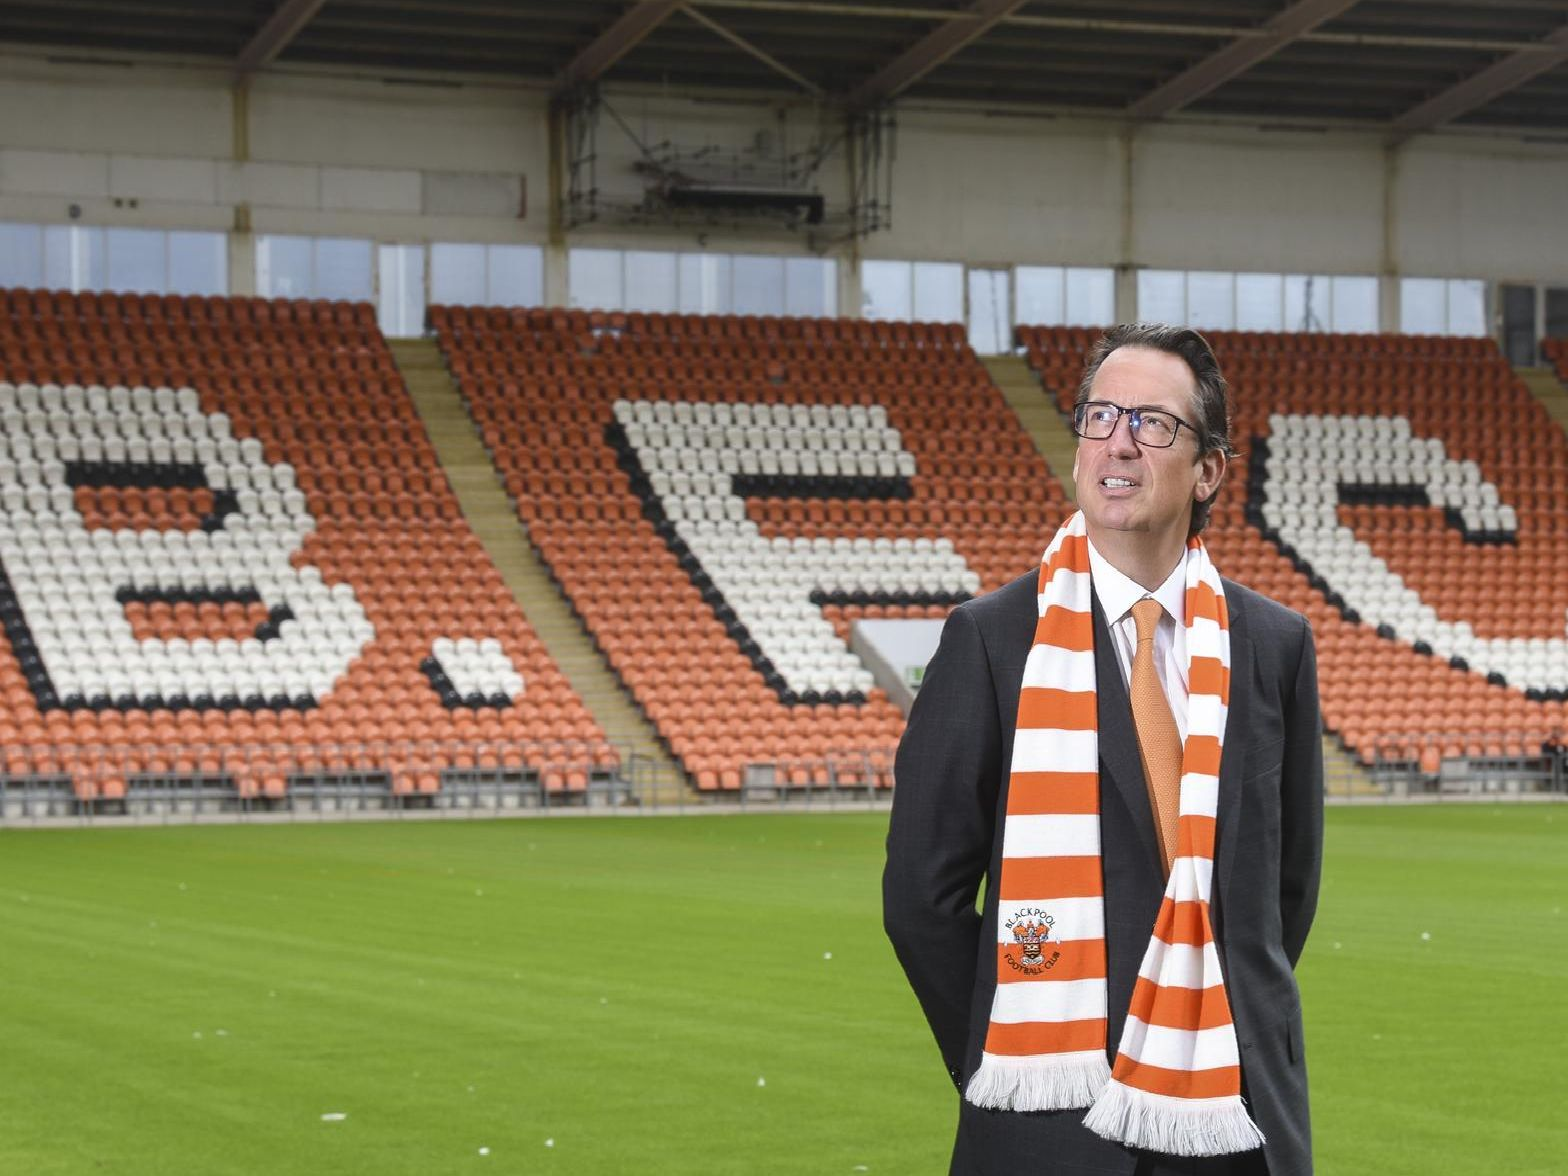 Simon Sadler was unveiled as the club's new owner earlier today